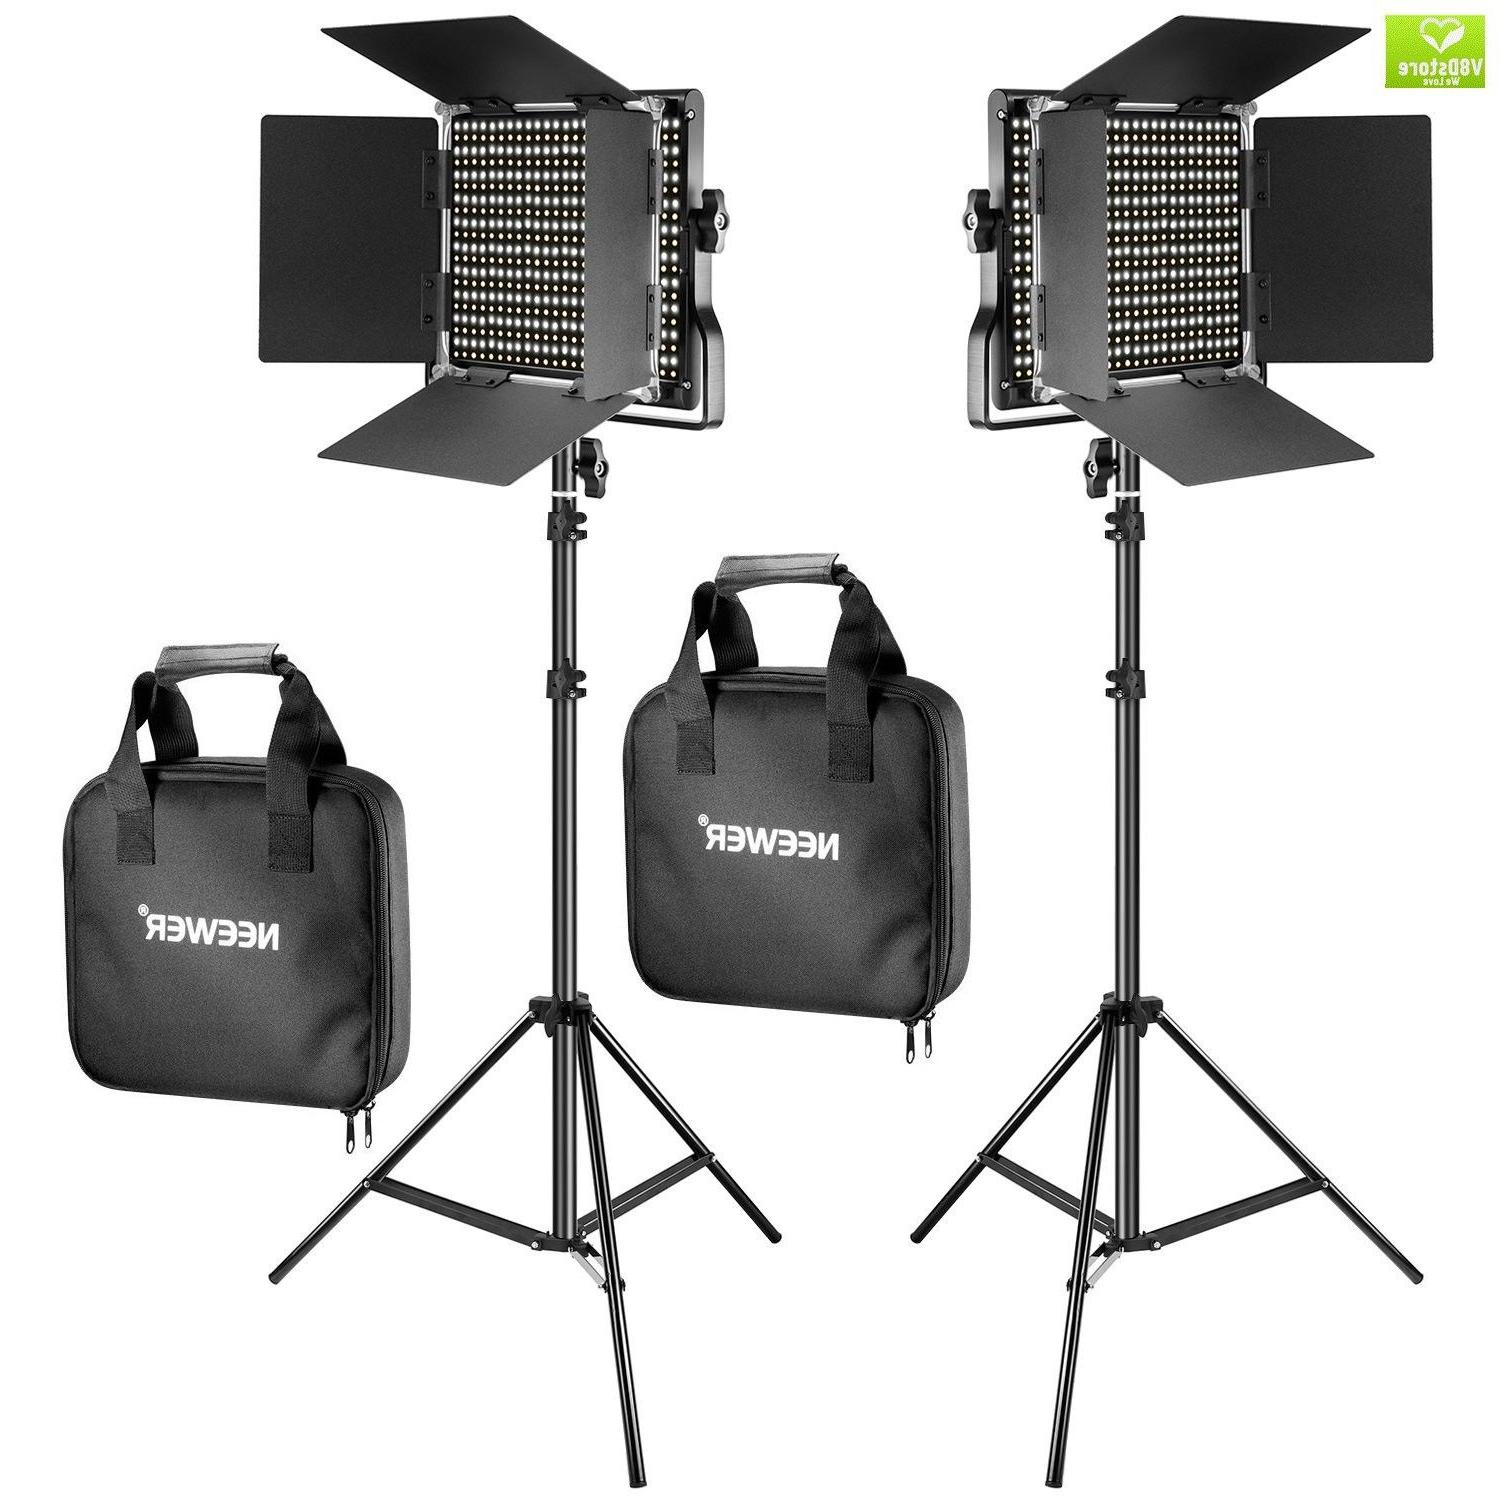 bi 660 light stand kit